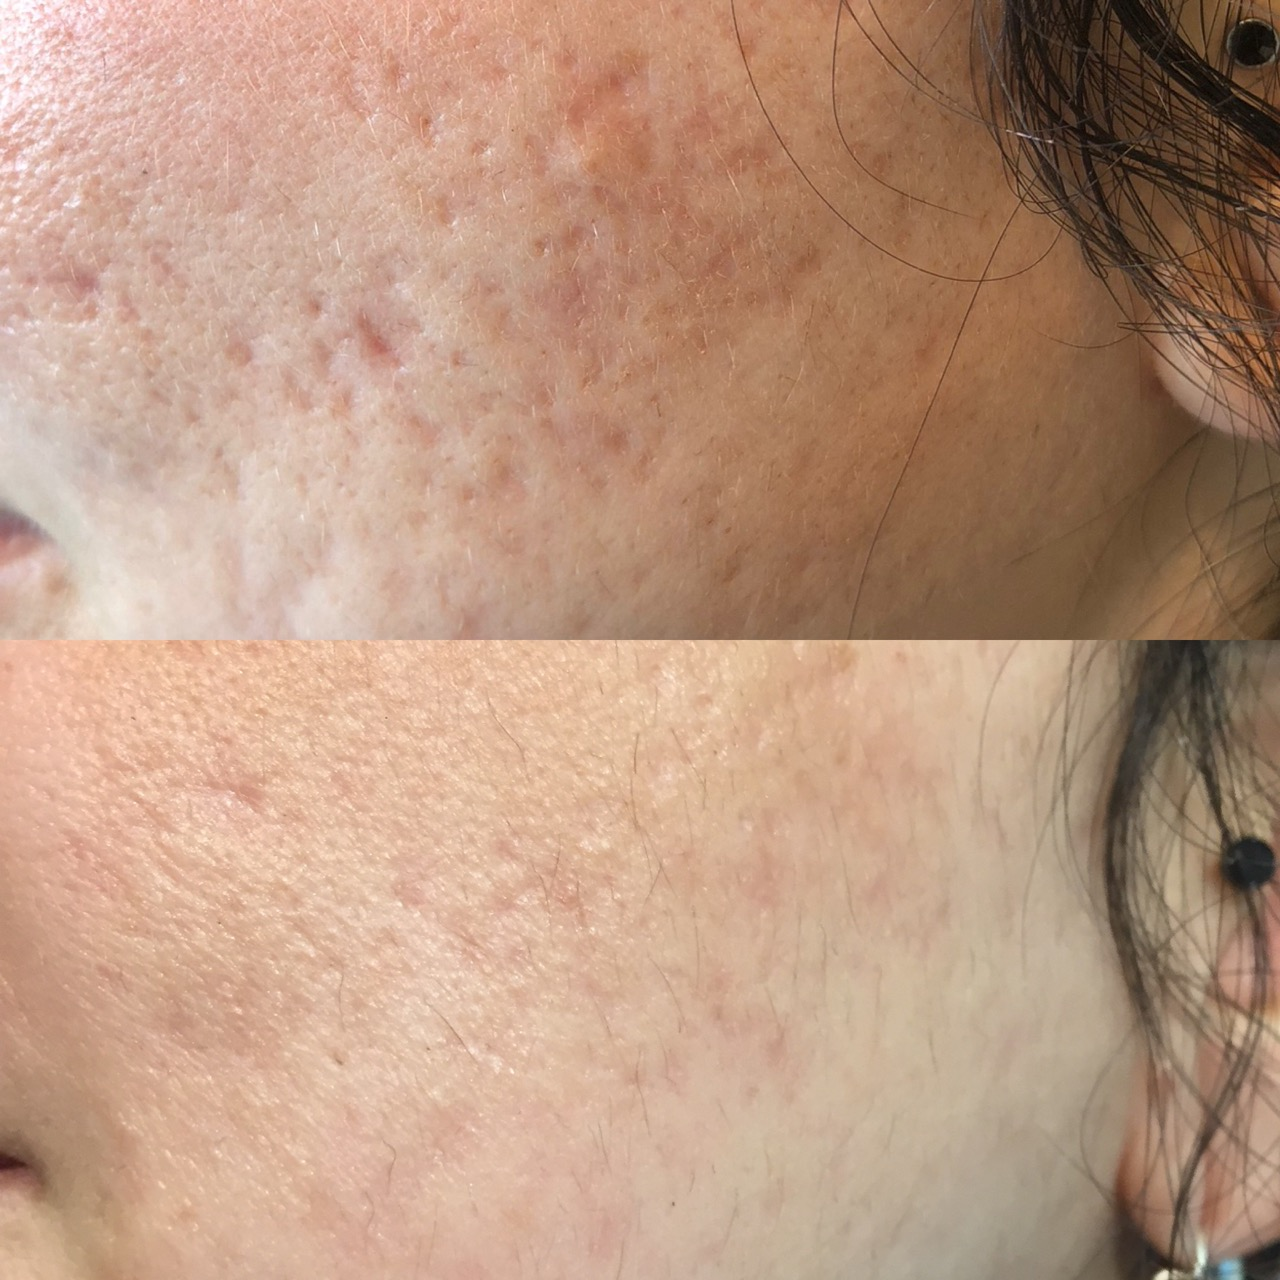 Acne Scarring following Radiofrequency & Microneedling -